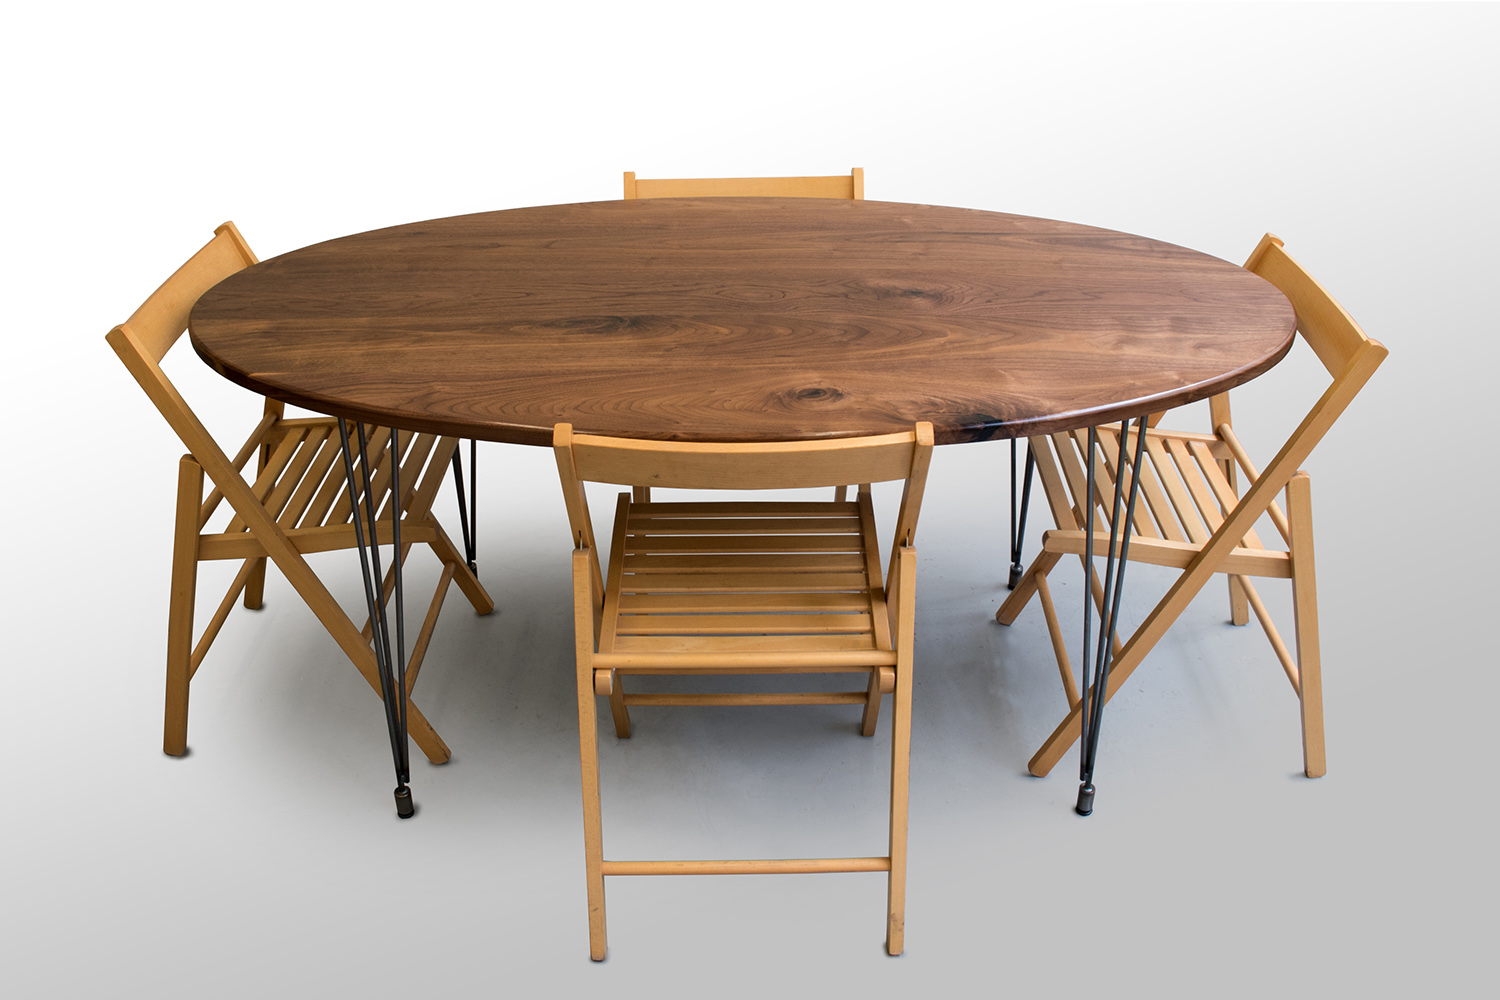 side with chairsWalnut oval kitchen table.jpg